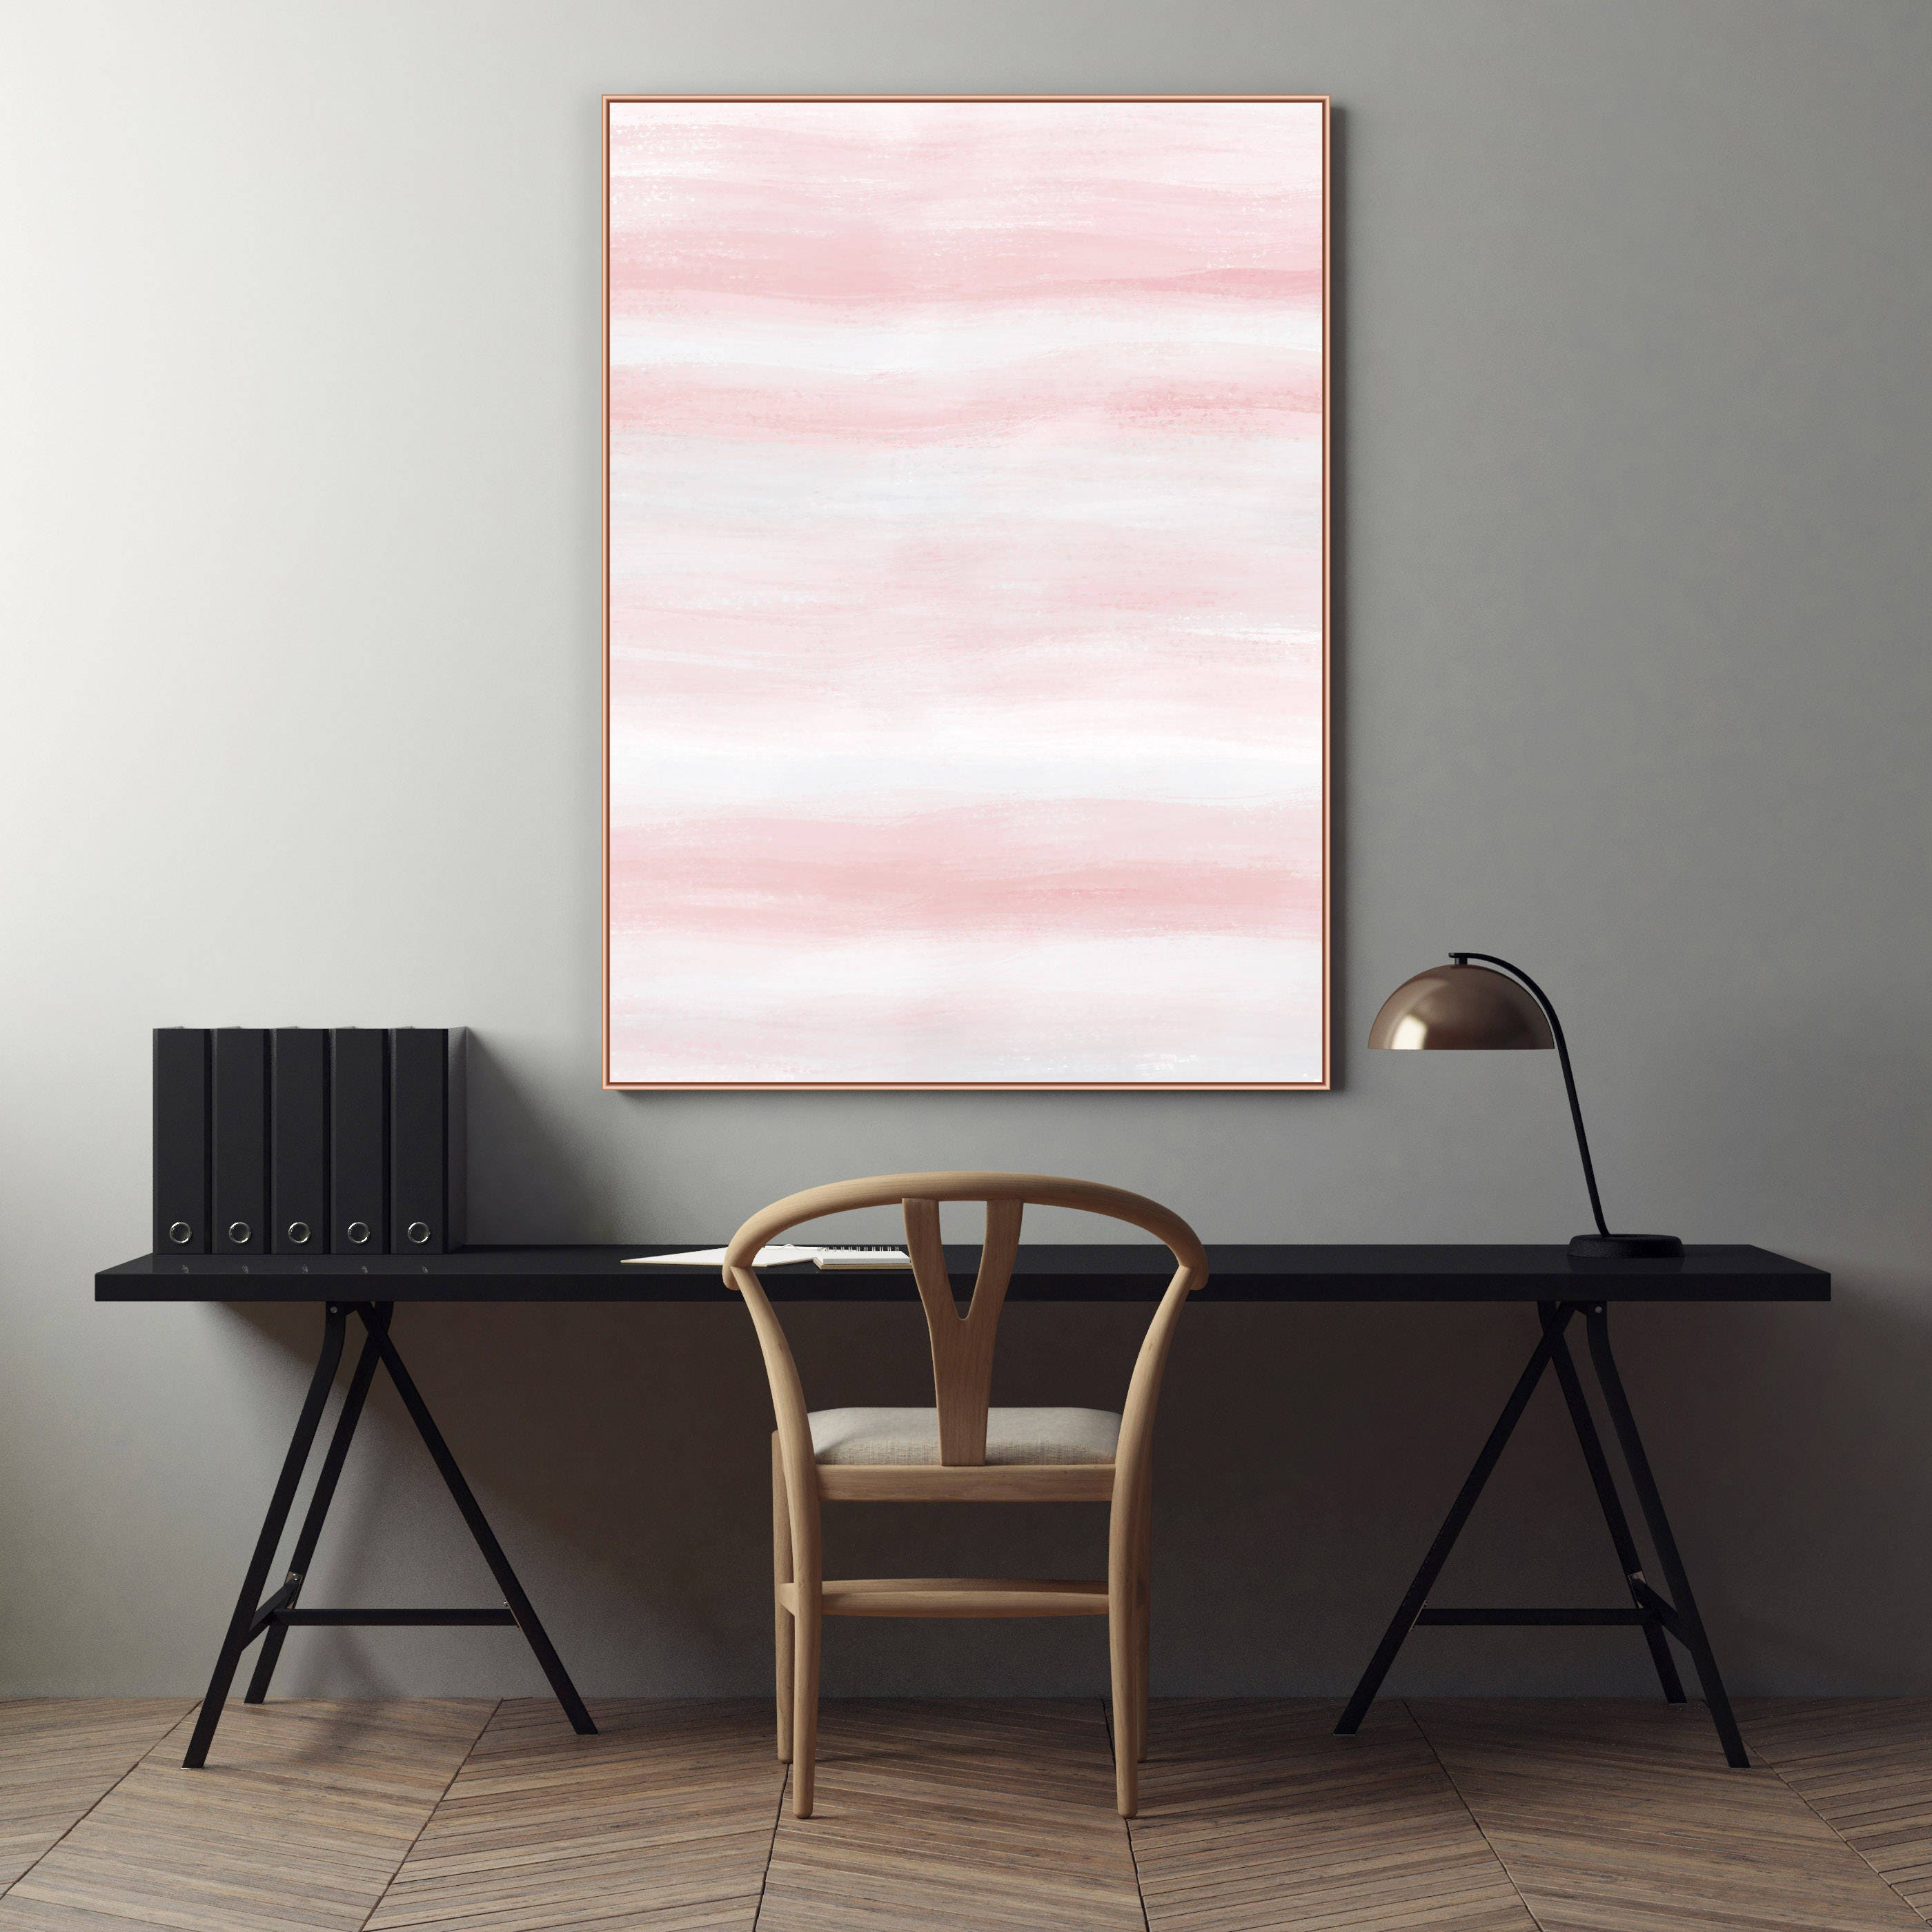 Blush Pink and Pale Grey Abstract Painting Serene Art Print